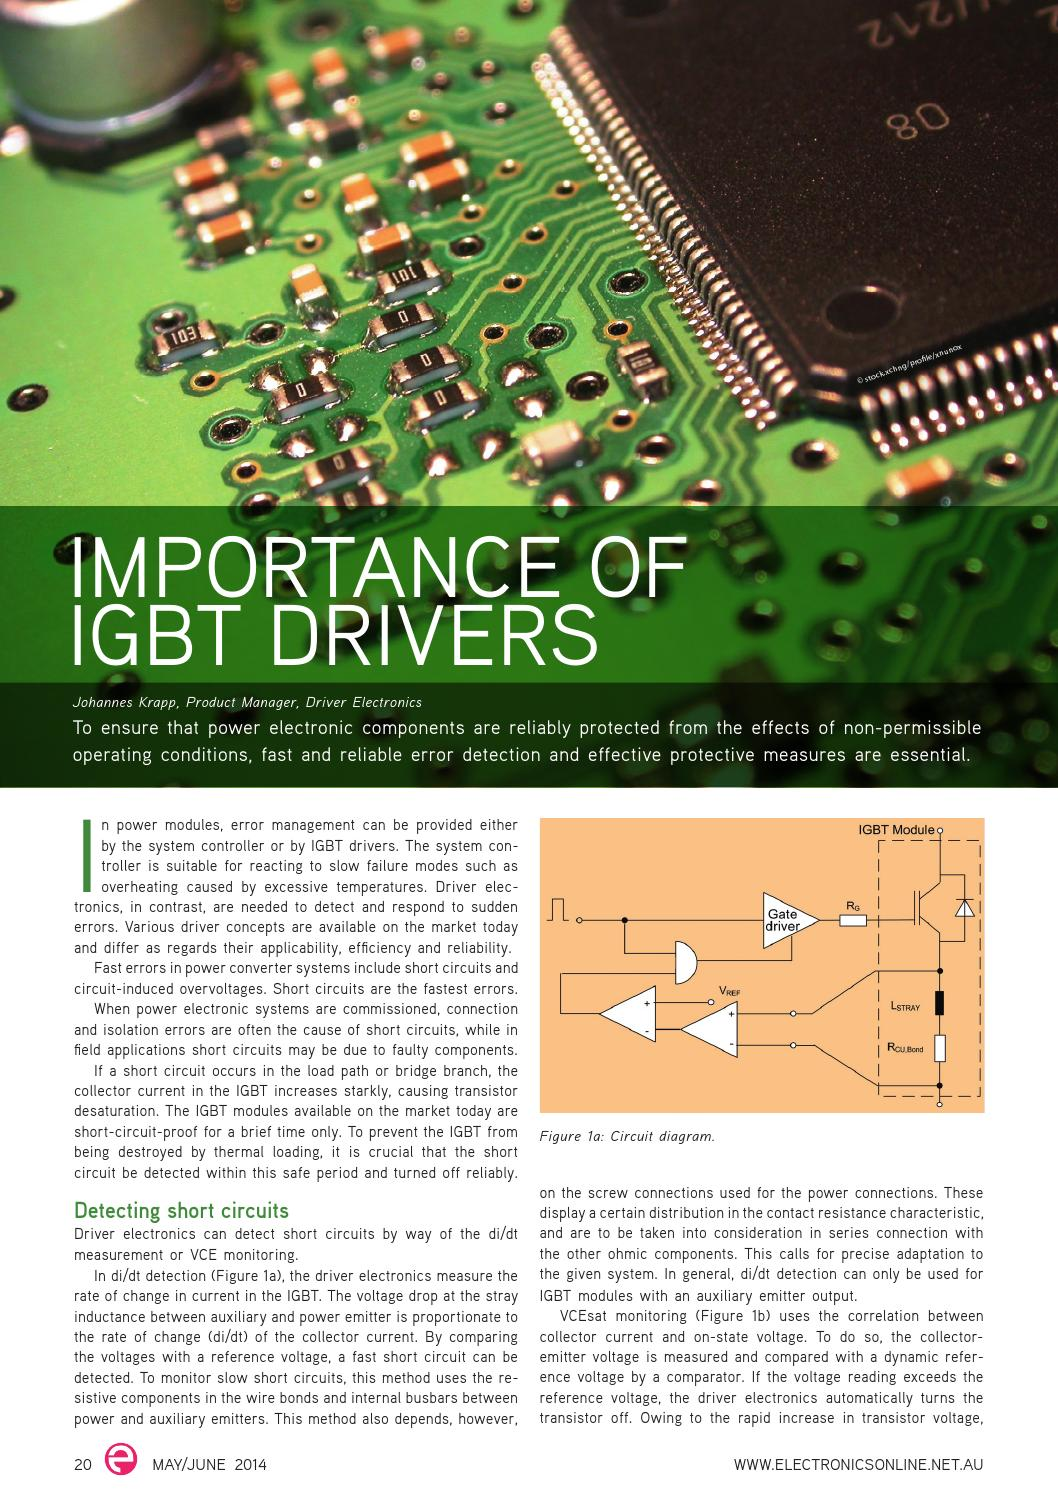 whats new in electronics may jun 2014 by westwick farrow media issuu